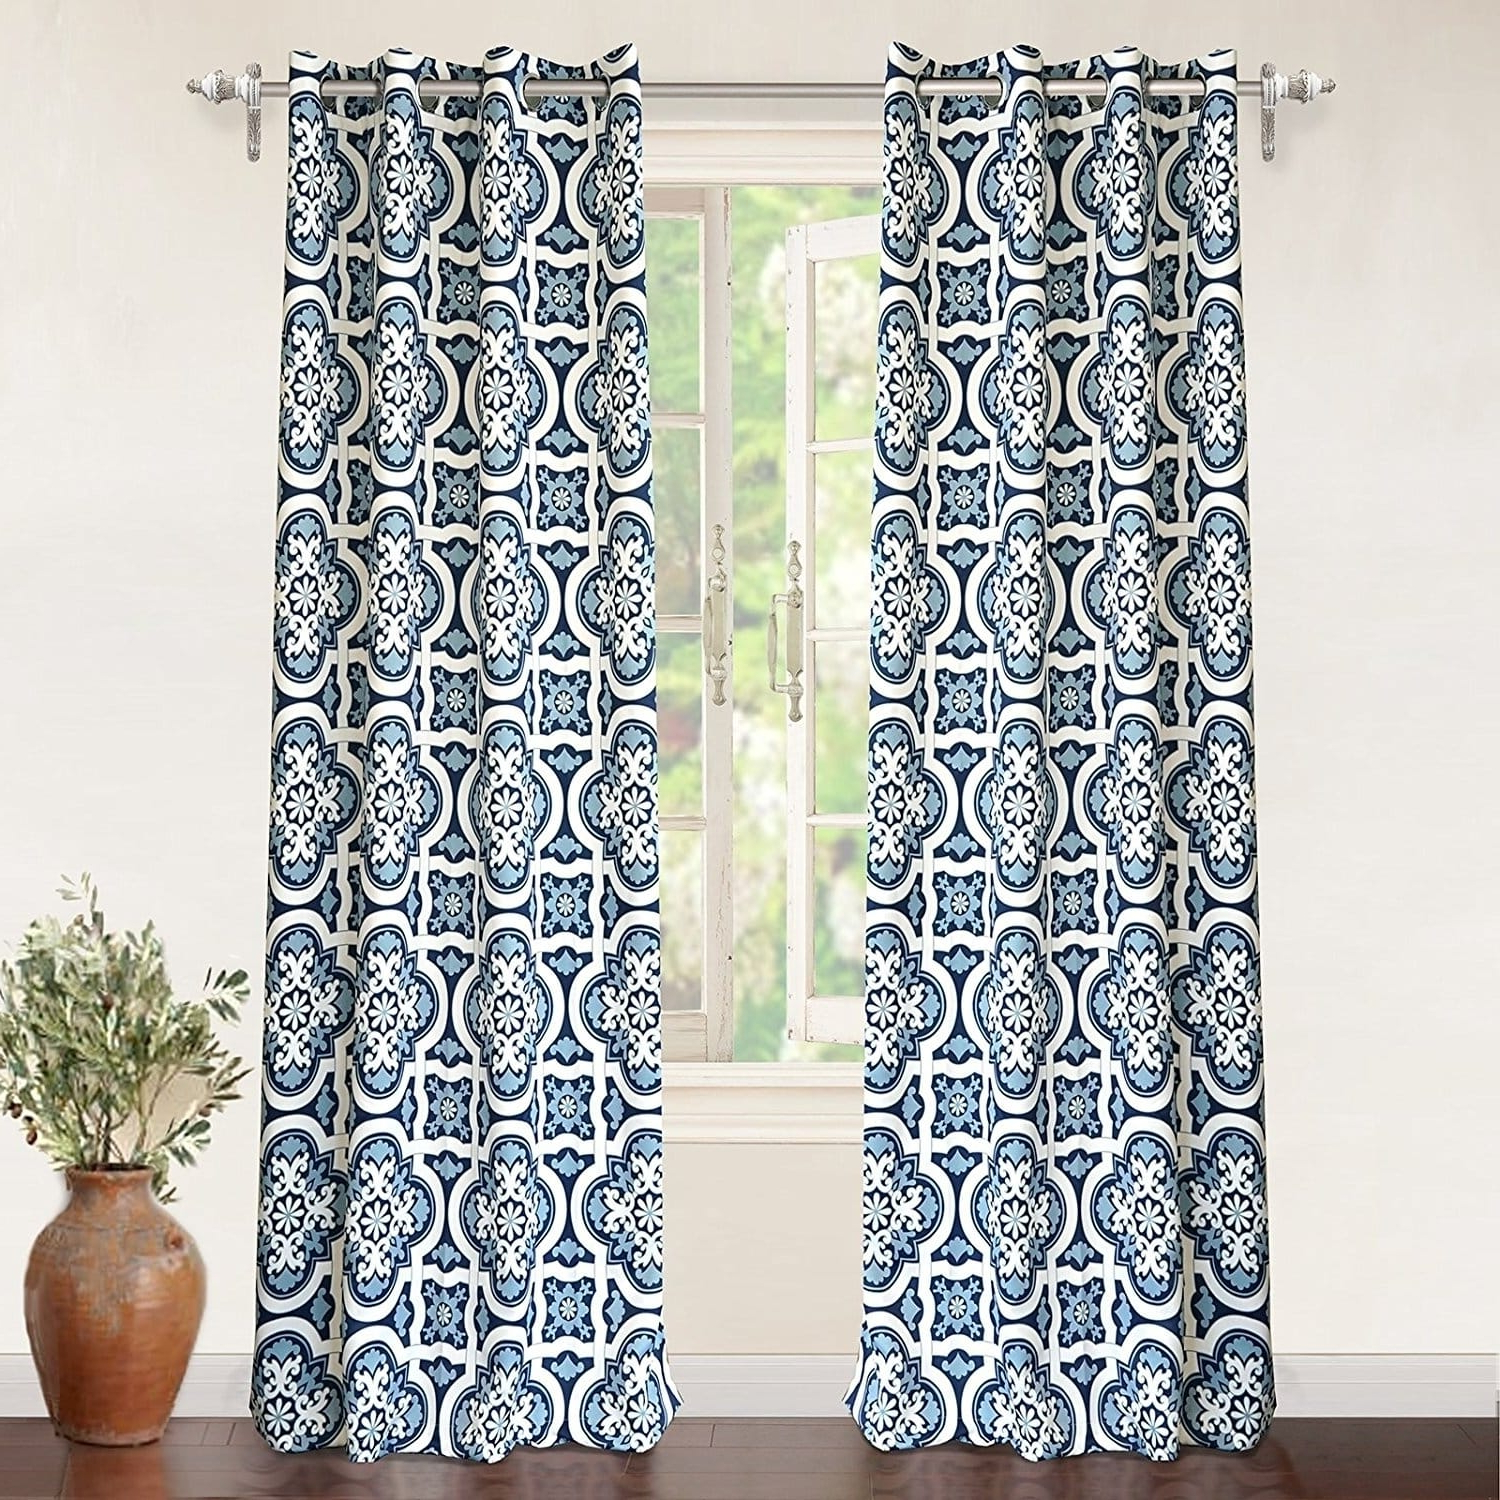 Driftaway Floral Trellis Room Darkening Window Curtain Panel Within Most Up To Date Floral Pattern Room Darkening Window Curtain Panel Pairs (View 8 of 20)